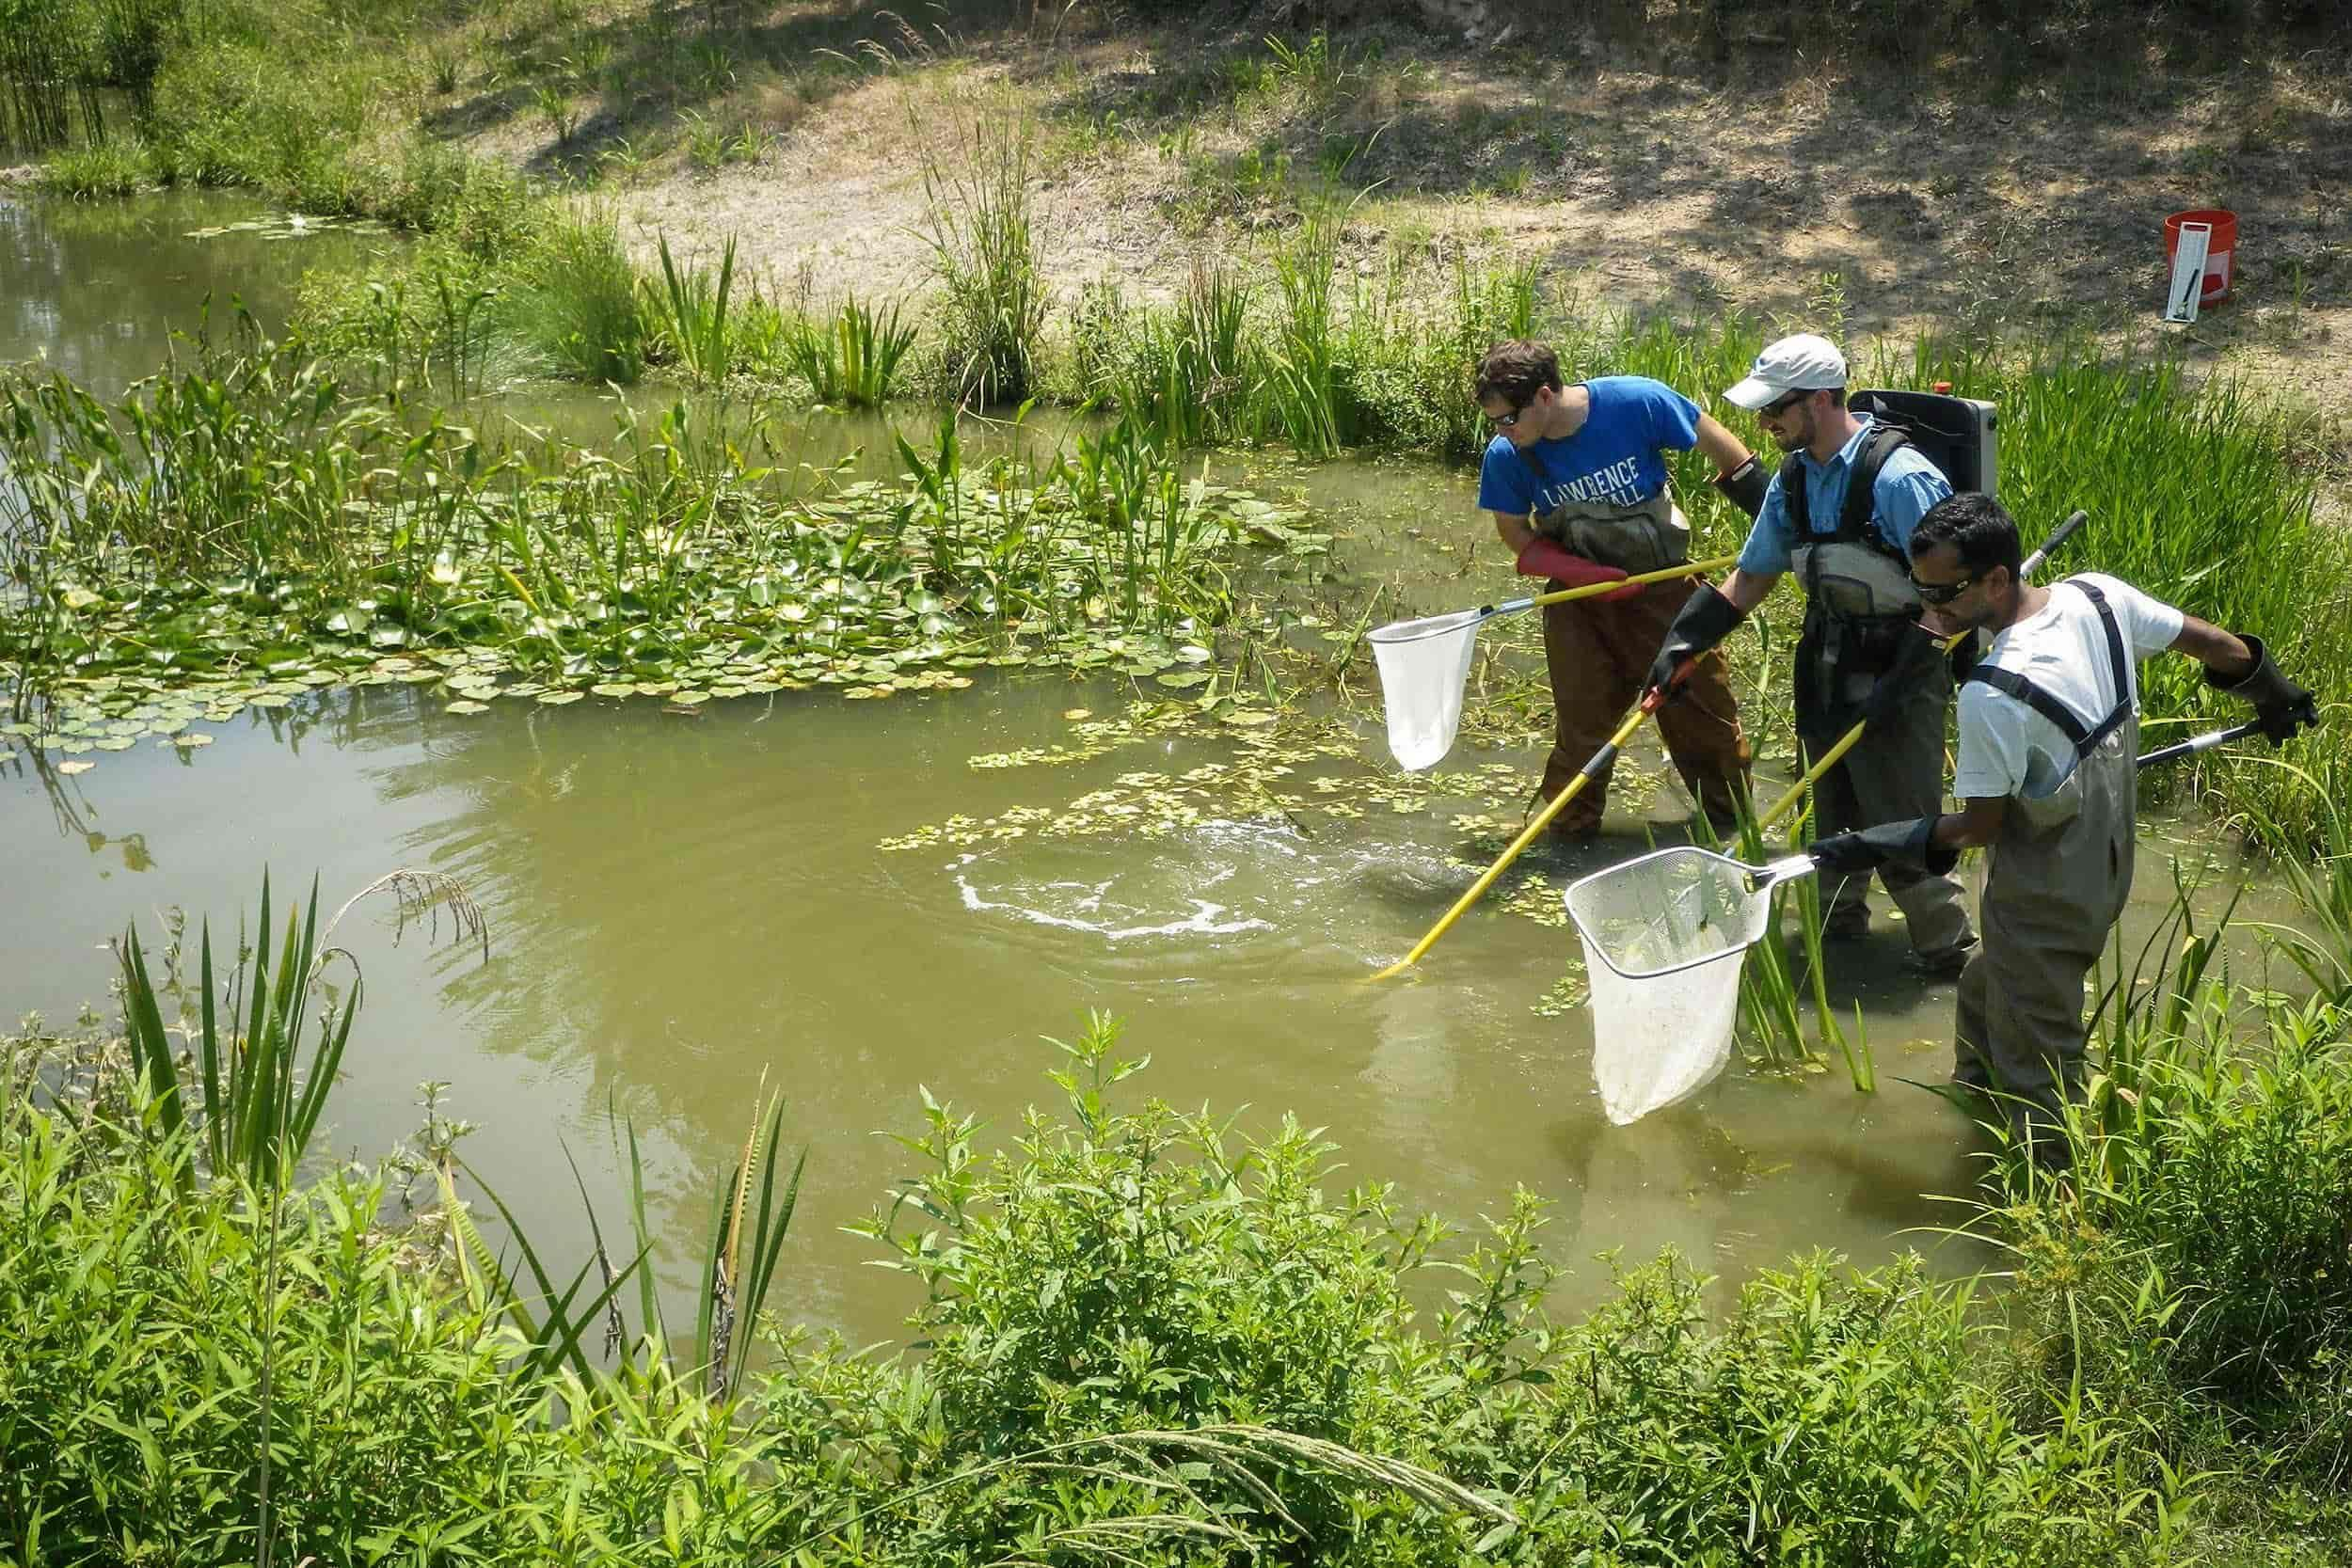 Research assistants Alex Miller, Greg Knothe, and Khem Paudel utilize backpack electroshocking equipment to conduct a biological survey at the created wetland site.